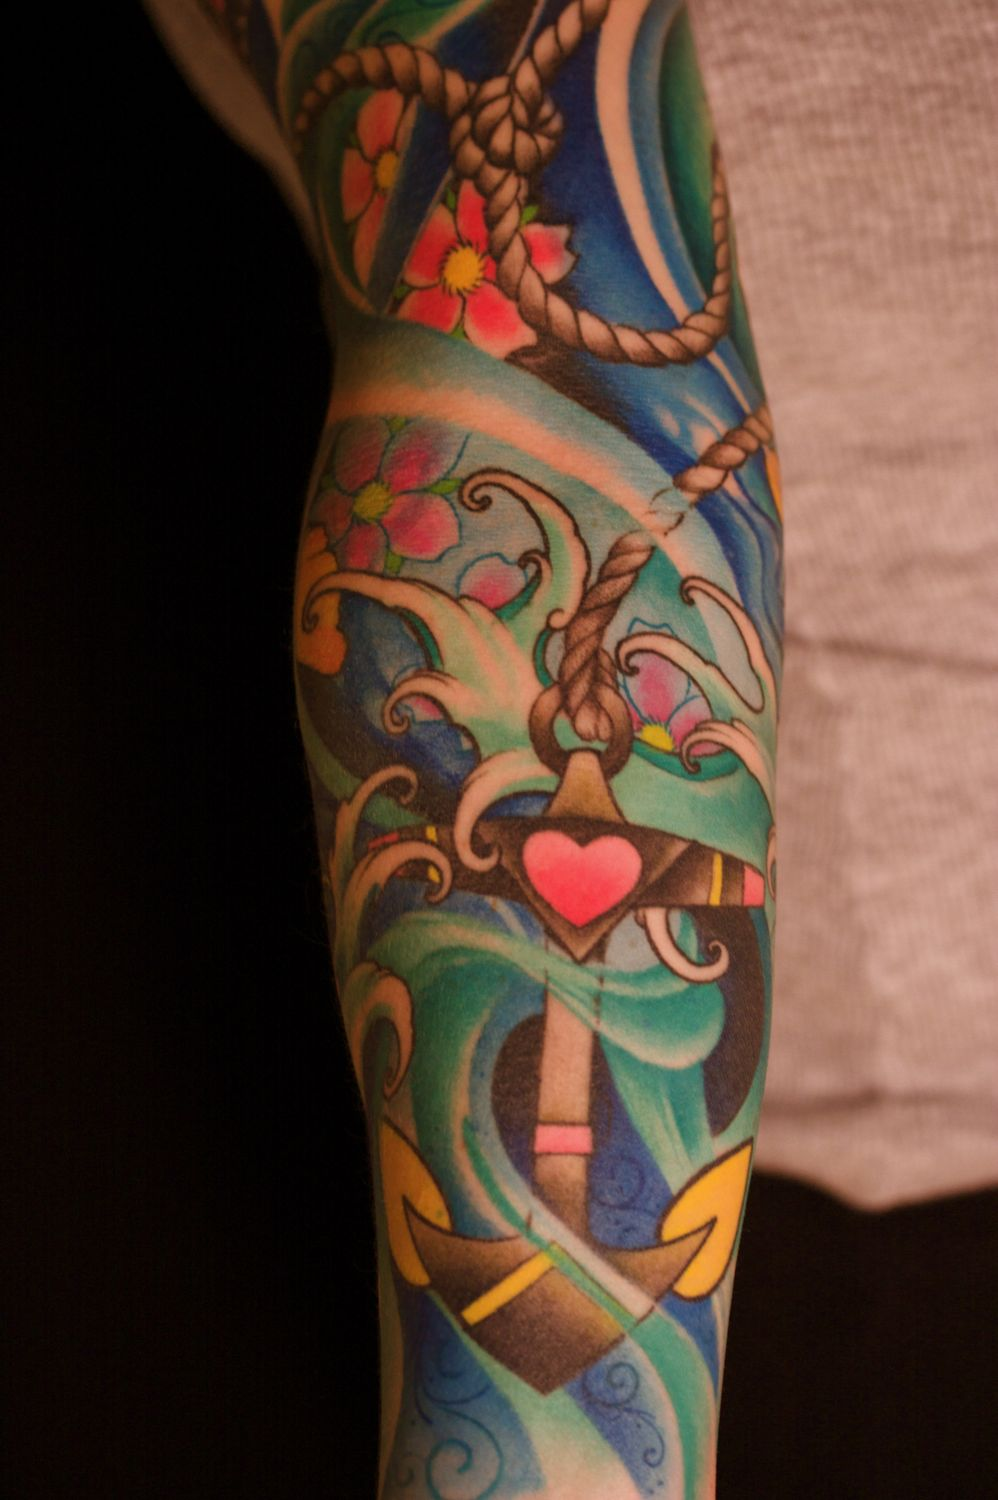 Full Color Sleeve Tattoo: Leave Comment